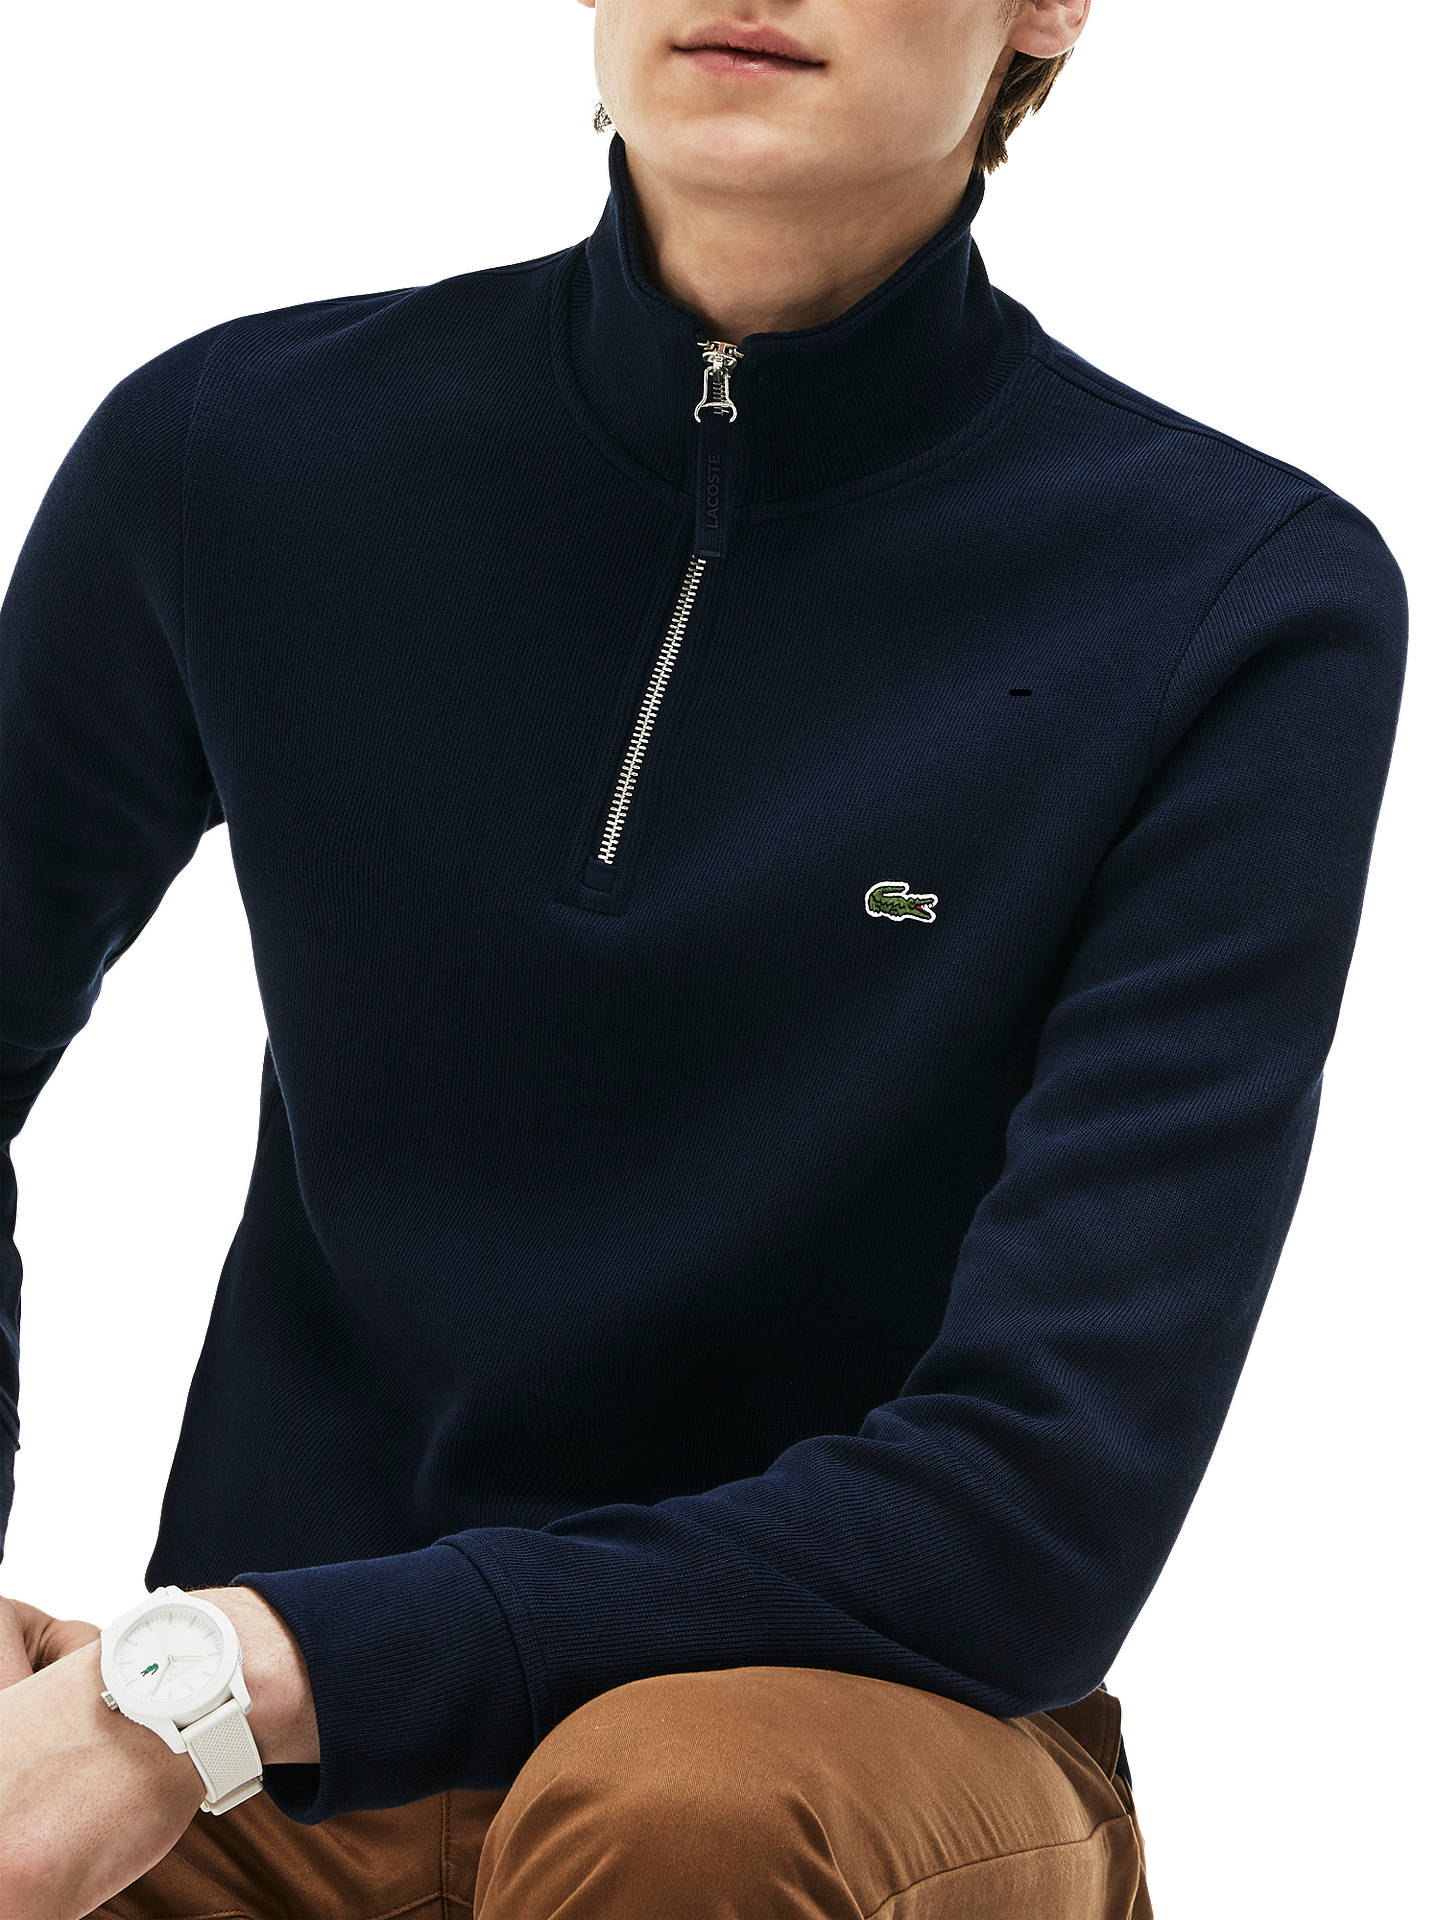 ae0e3a25060 Lacoste Half Zip Cotton Knit Jumper, Navy at John Lewis & Partners